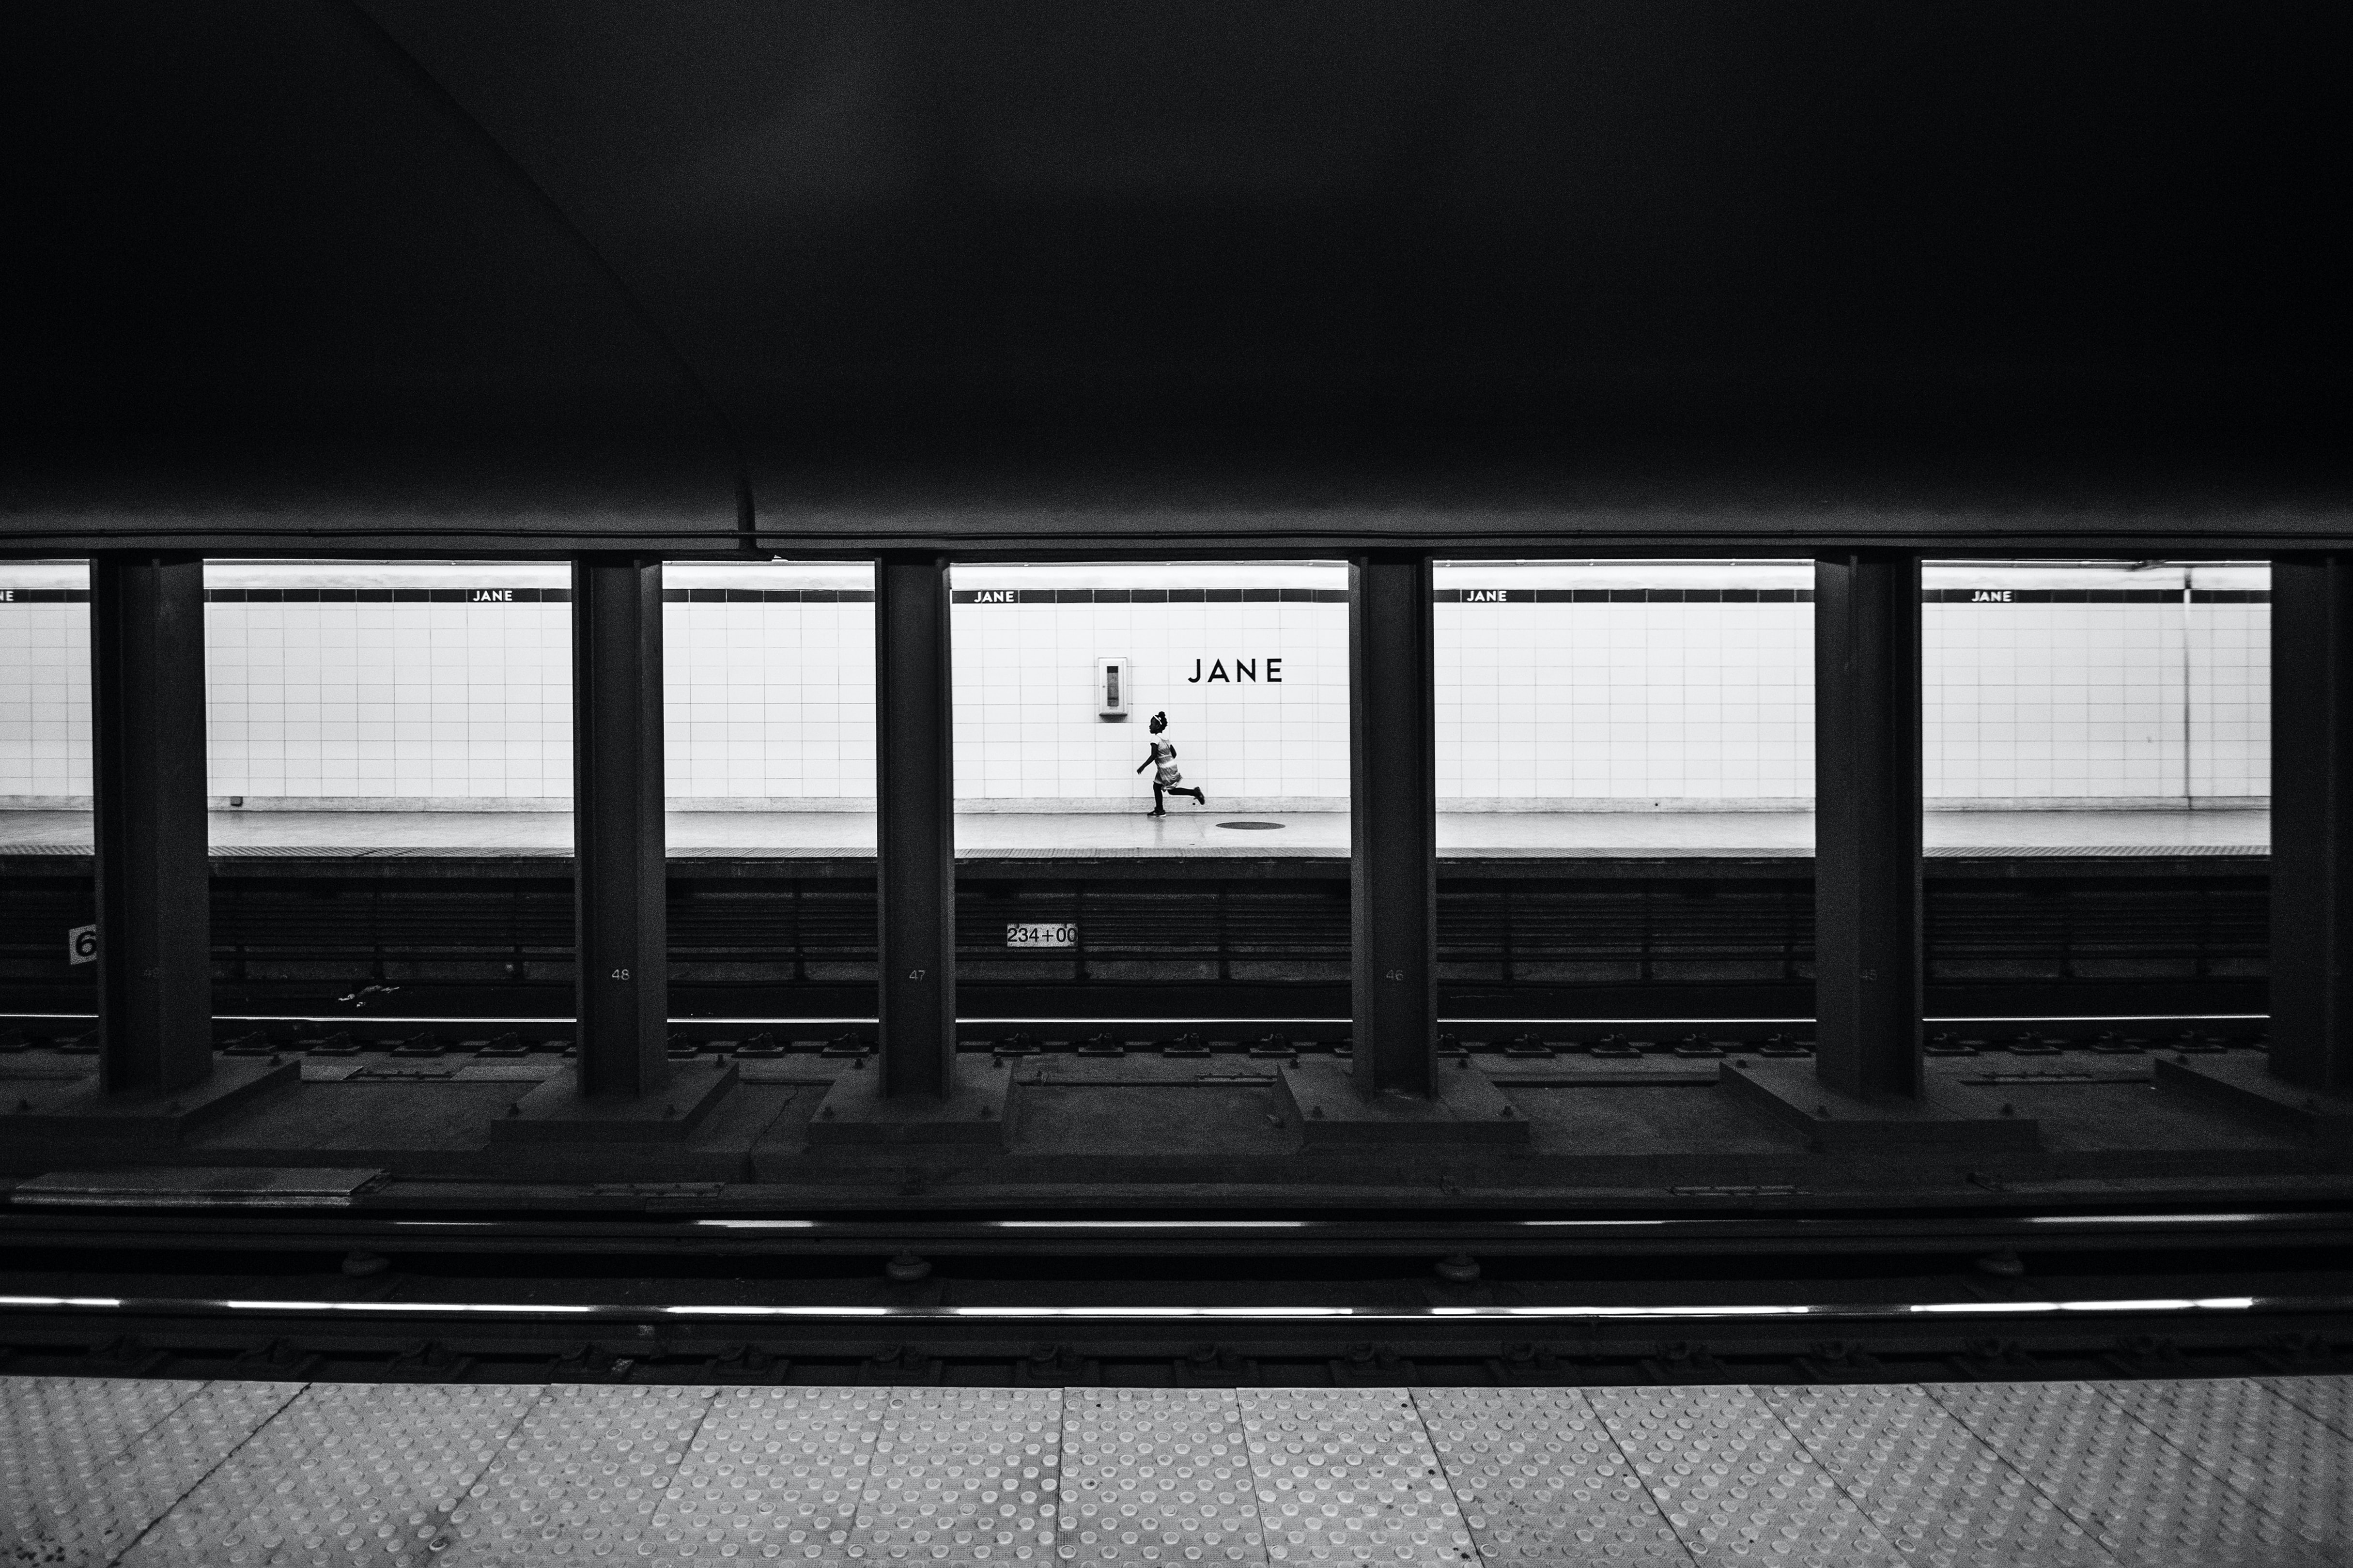 A person running on a subway platform after missing the train